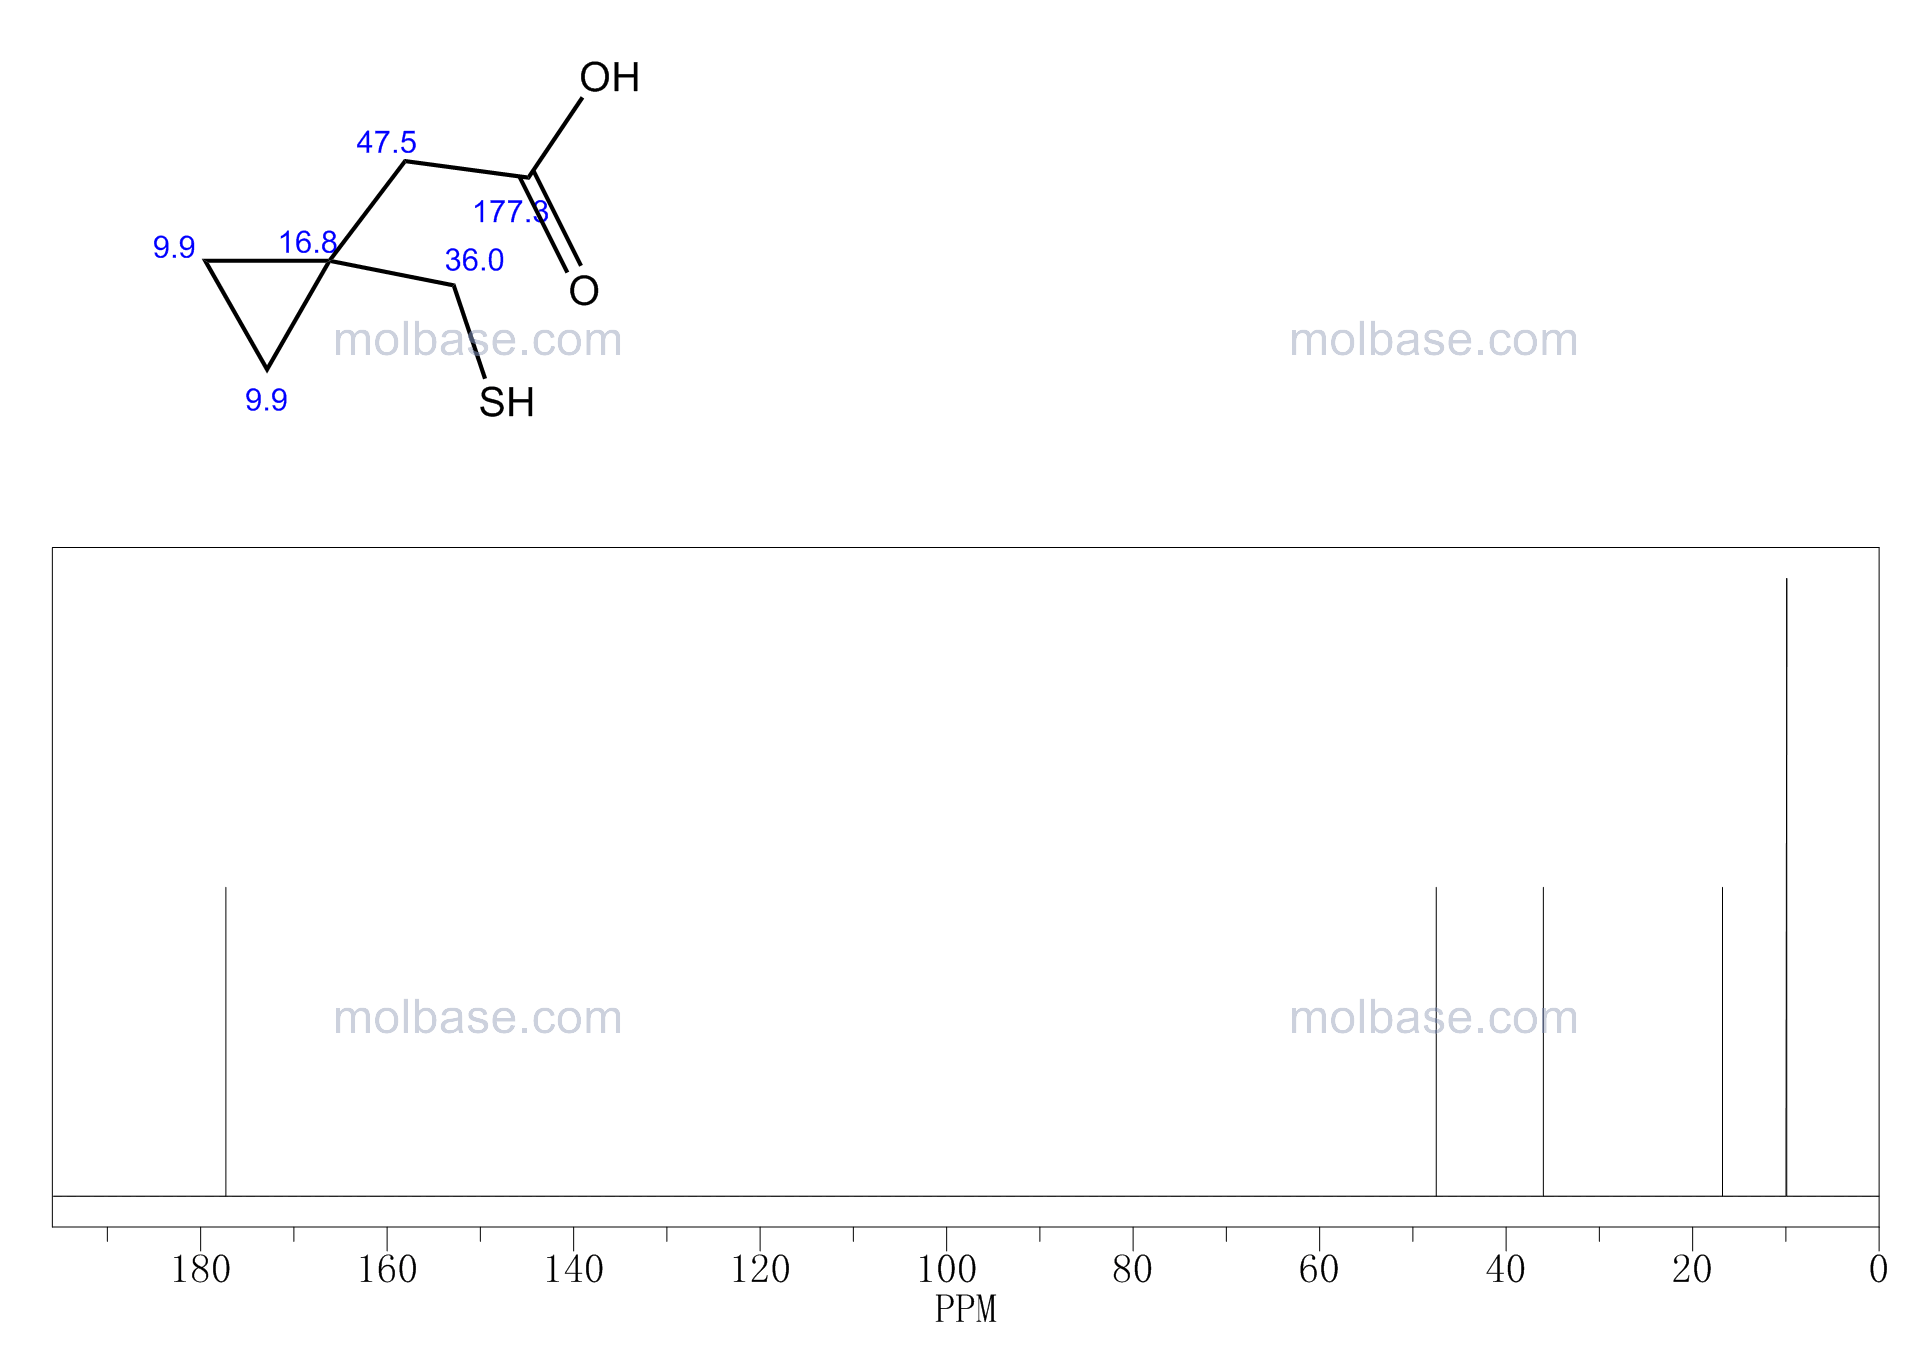 2-[1-(Mercaptomethyl)Cyclopropyl]Acetic Acid NMR spectra analysis, Chemical CAS NO. 162515-68-6 NMR spectral analysis, 2-[1-(Mercaptomethyl)Cyclopropyl]Acetic Acid C-NMR spectrum